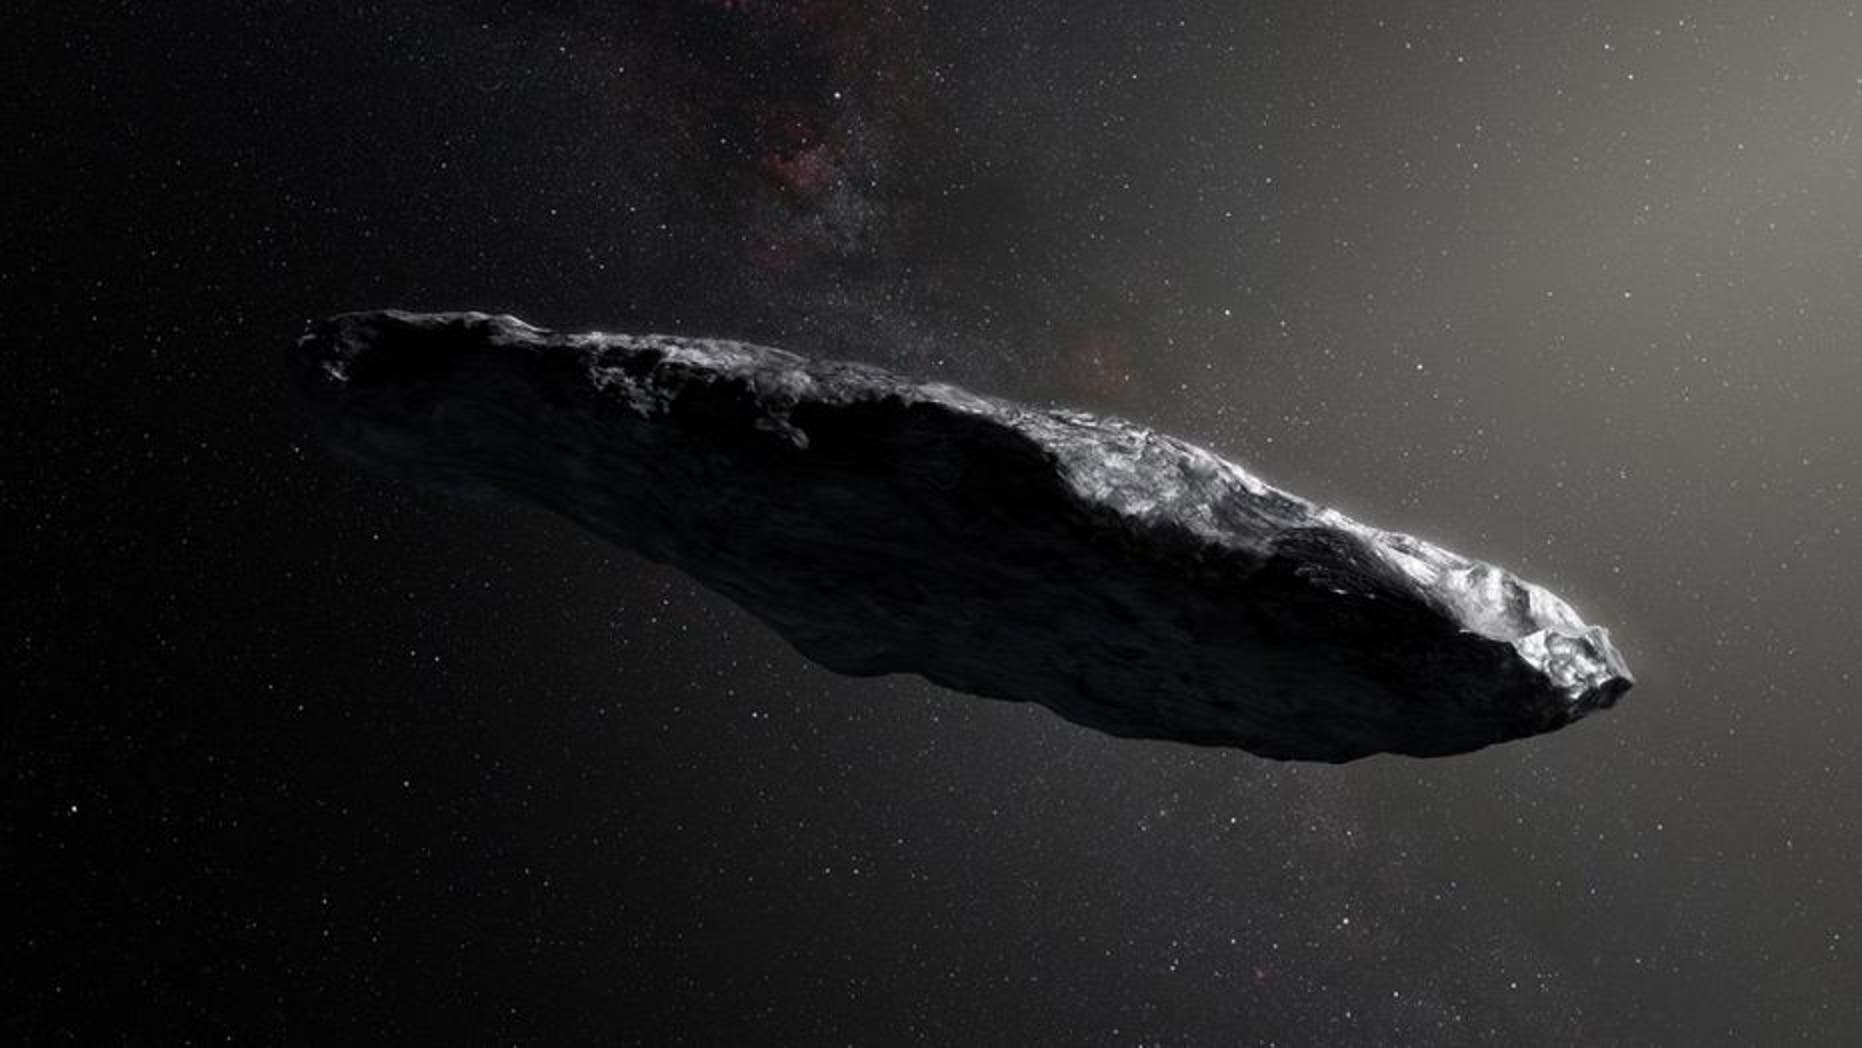 Scientists Believe Mysterious, Oddly Shaped Space Object Could Be 'Alien Probe'